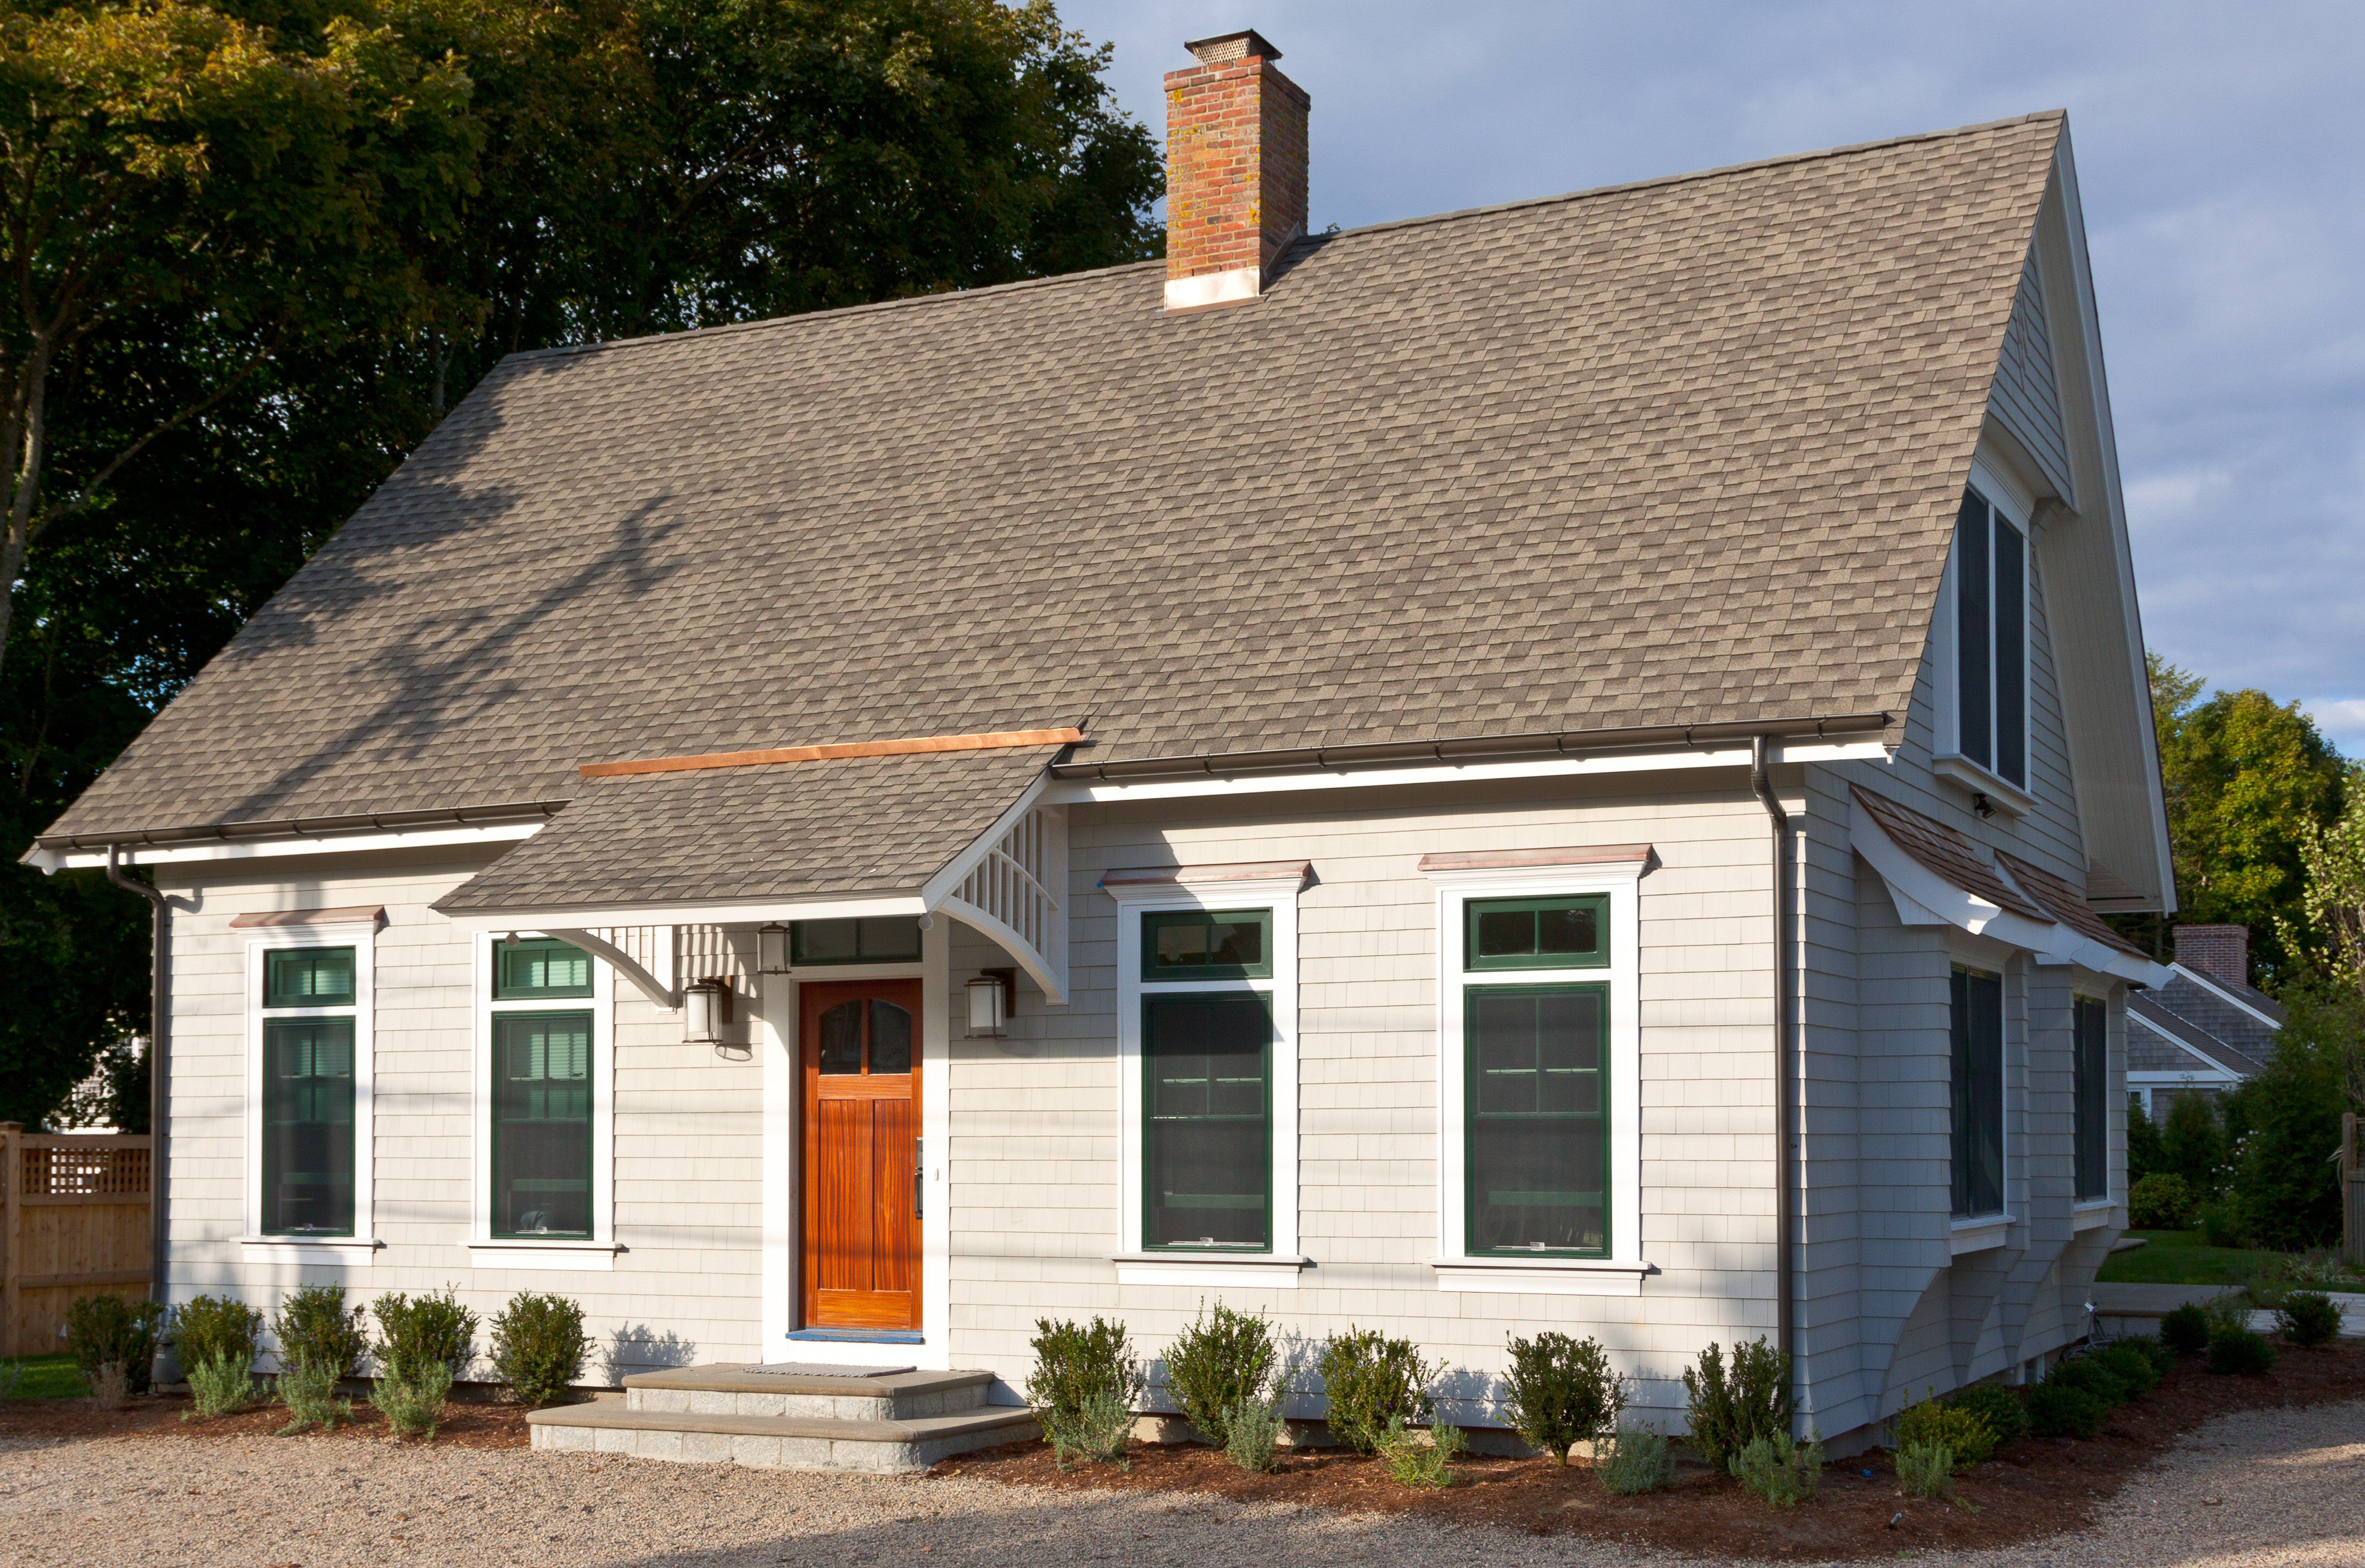 Center Chimney Cape Cod Style Home 5 Bay Facade No Dormers Shed